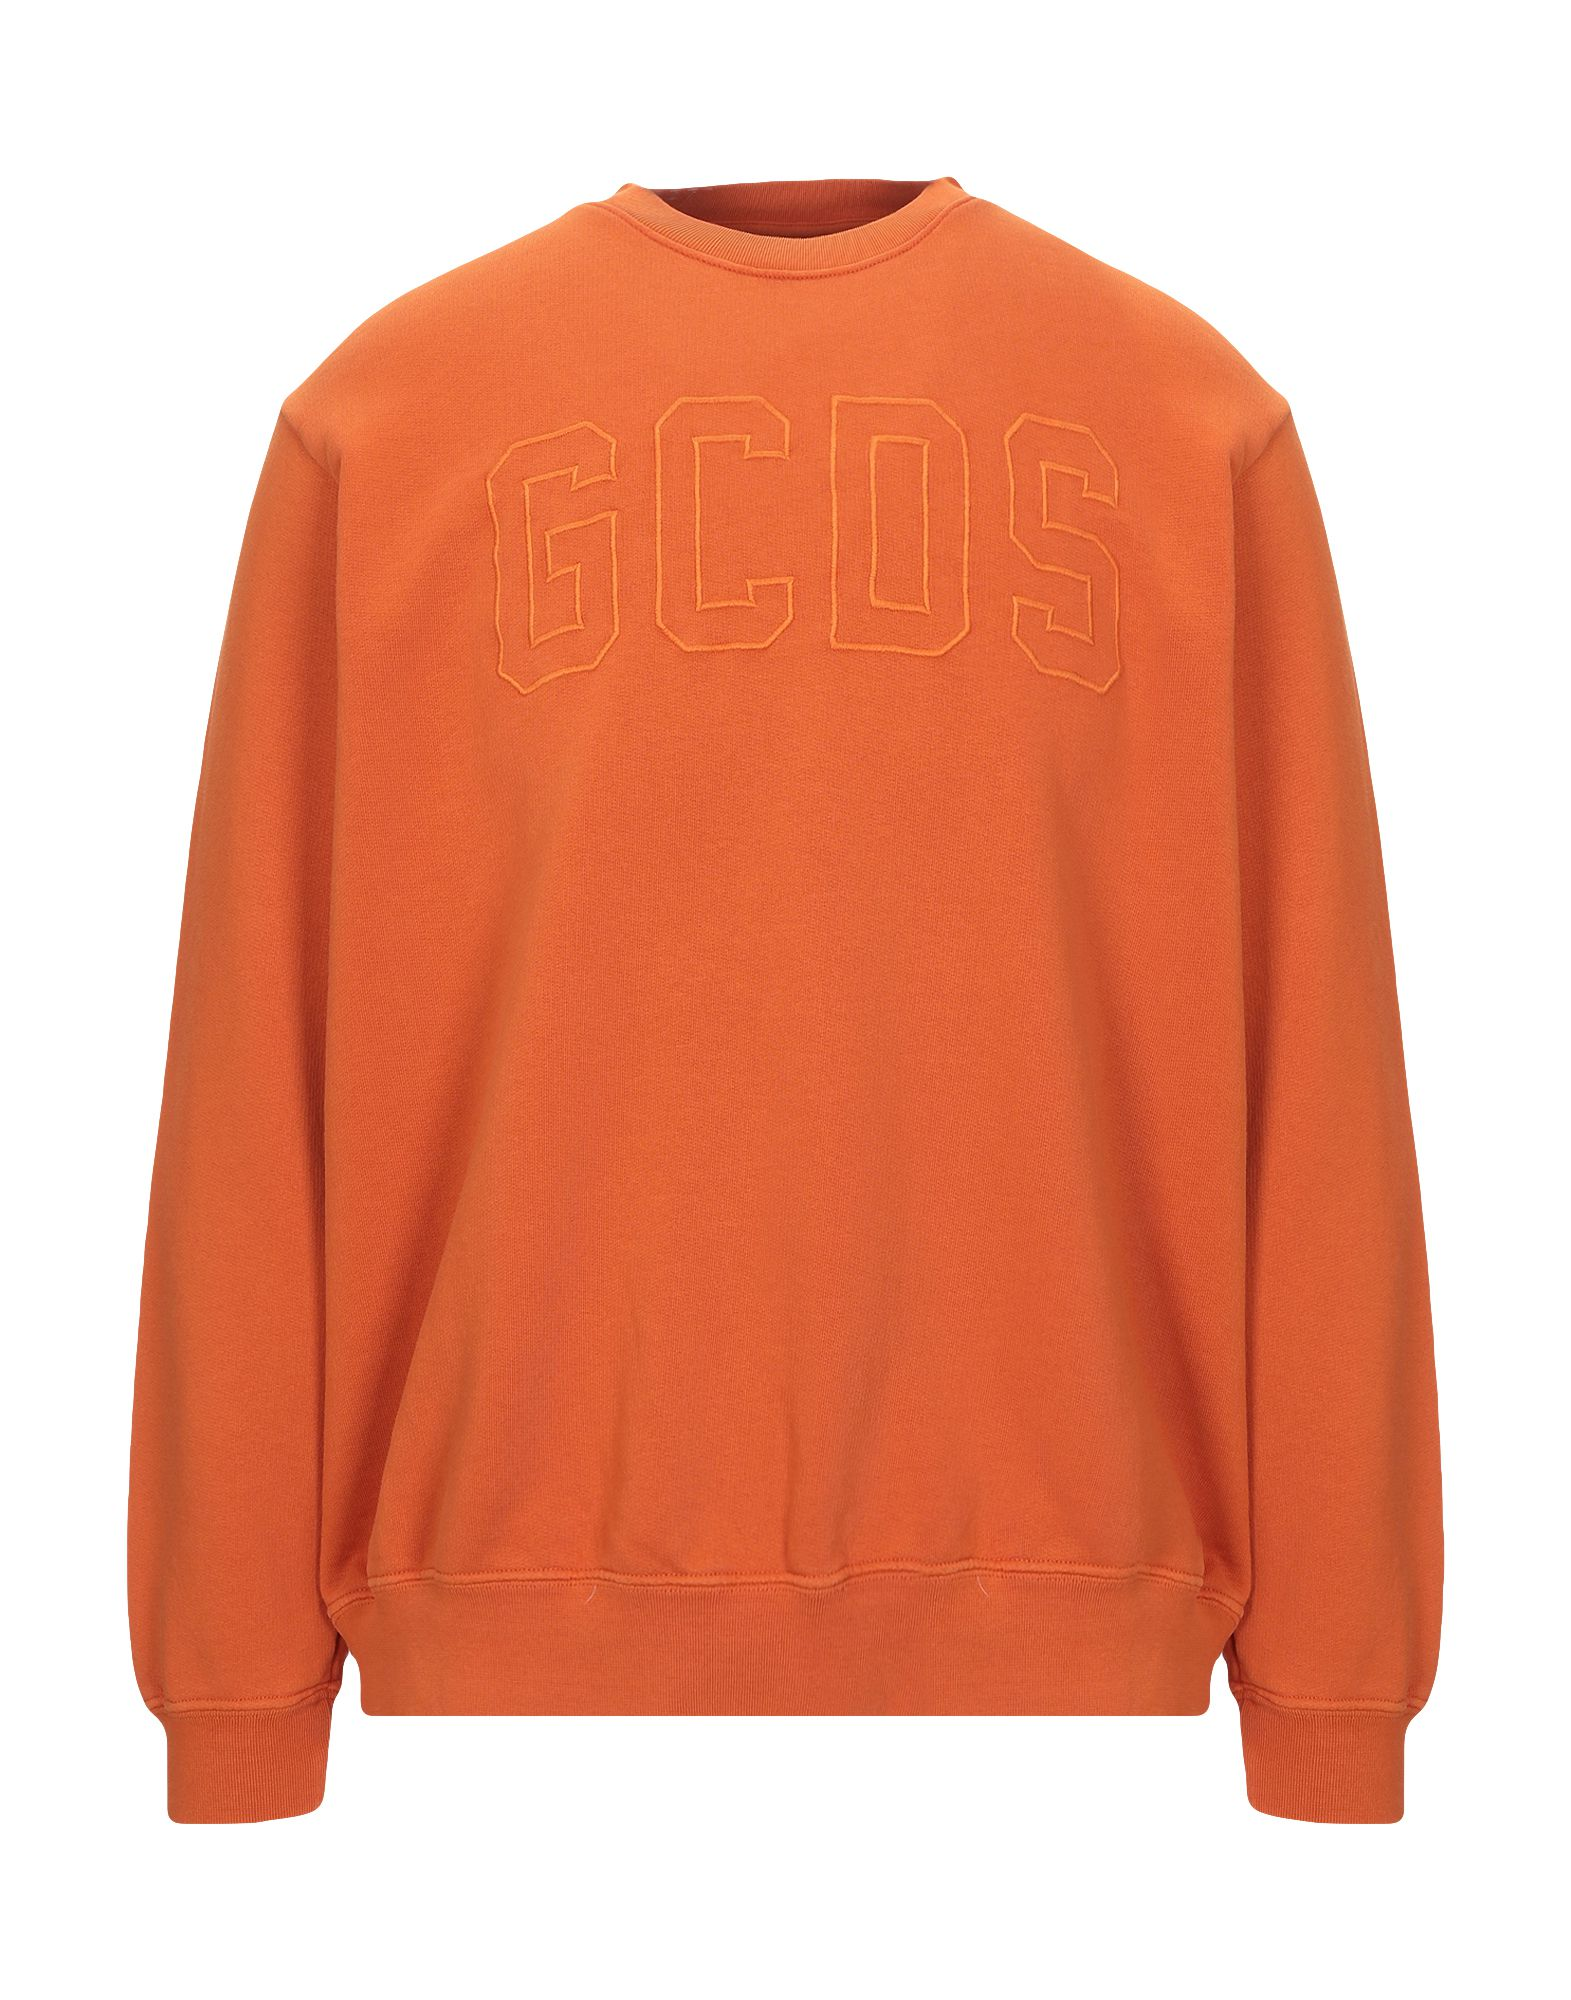 GCDS Sweatshirts. logo, basic solid color, round collar, long sleeves, no pockets, french terry lining. 100% Cotton